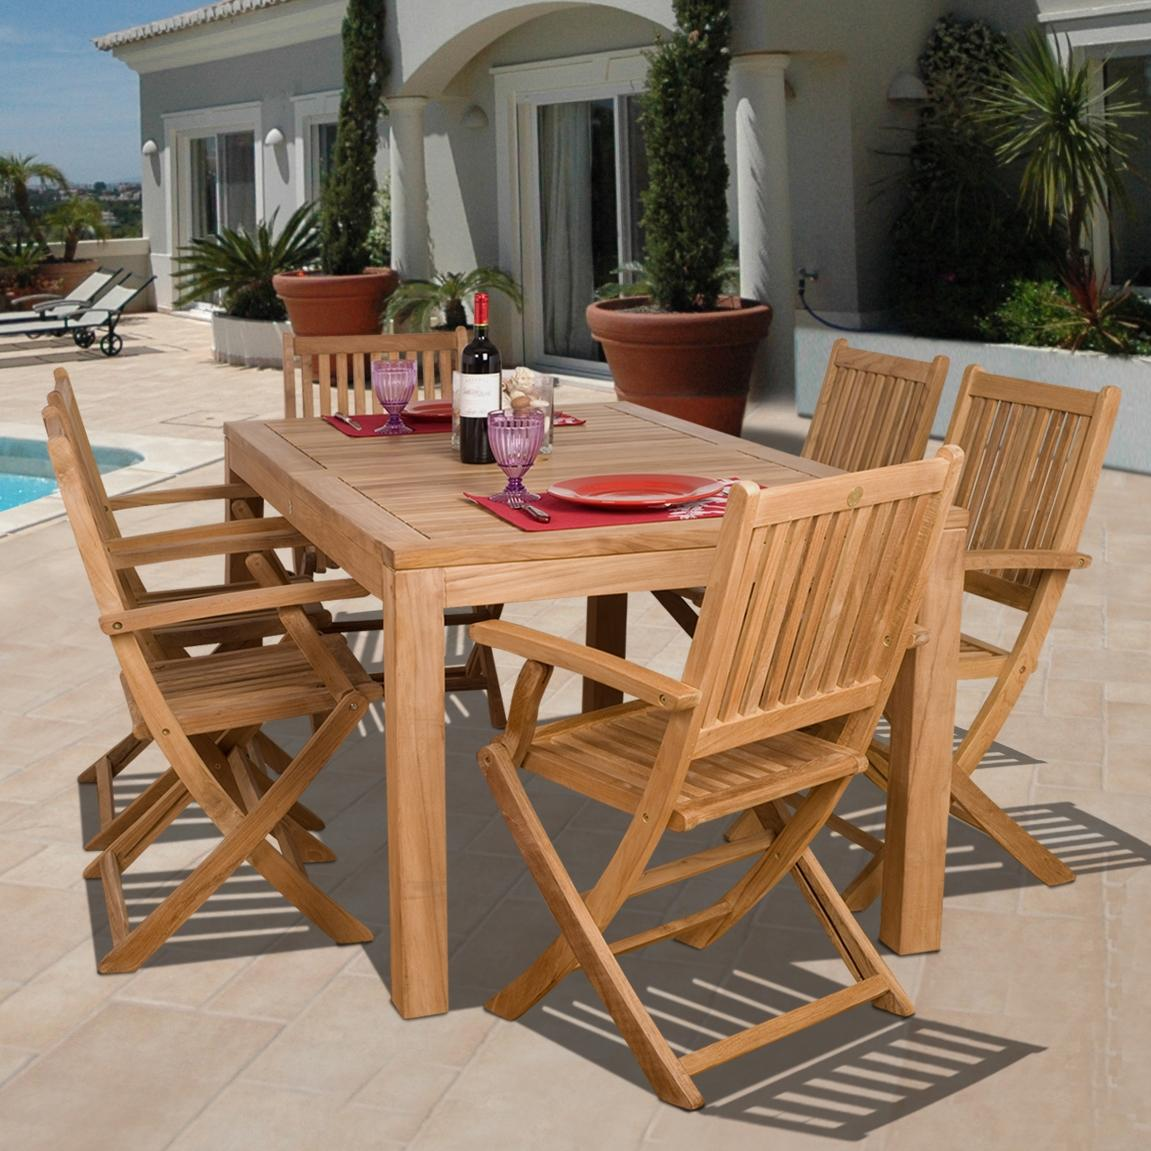 Amazonia Teak Budapest 6-person Teak Patio Dining Set With Folding Chairs